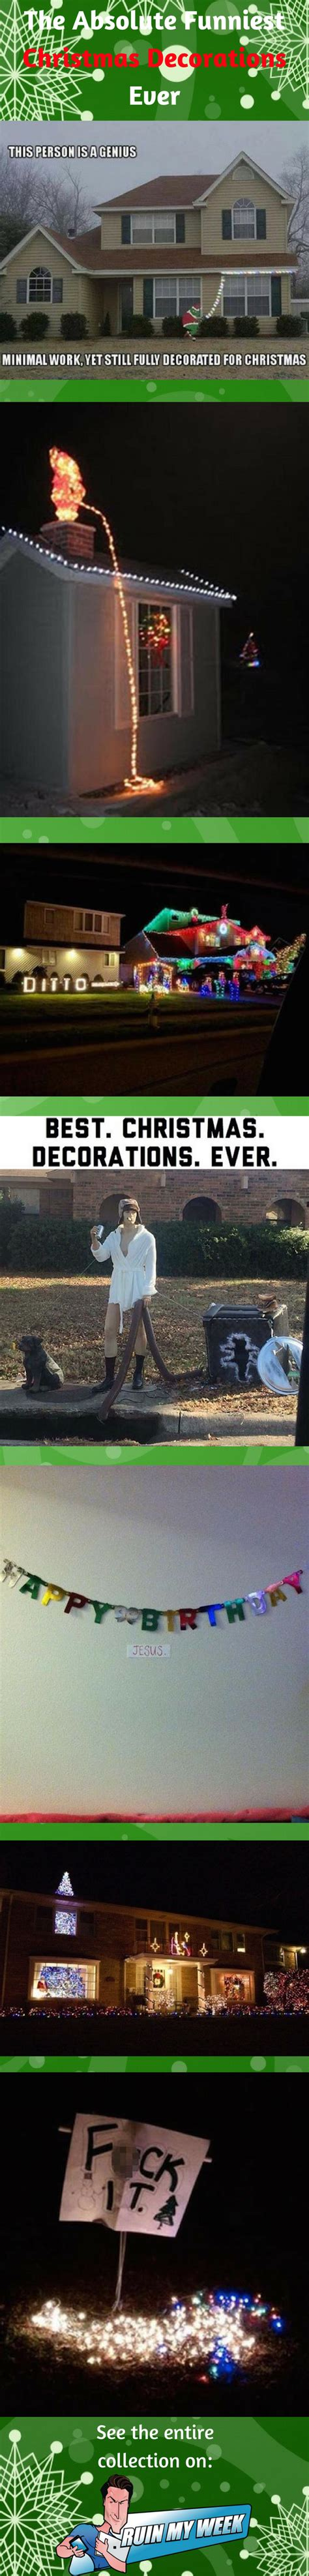 funniest decorations and here are the absolute funniest decorations